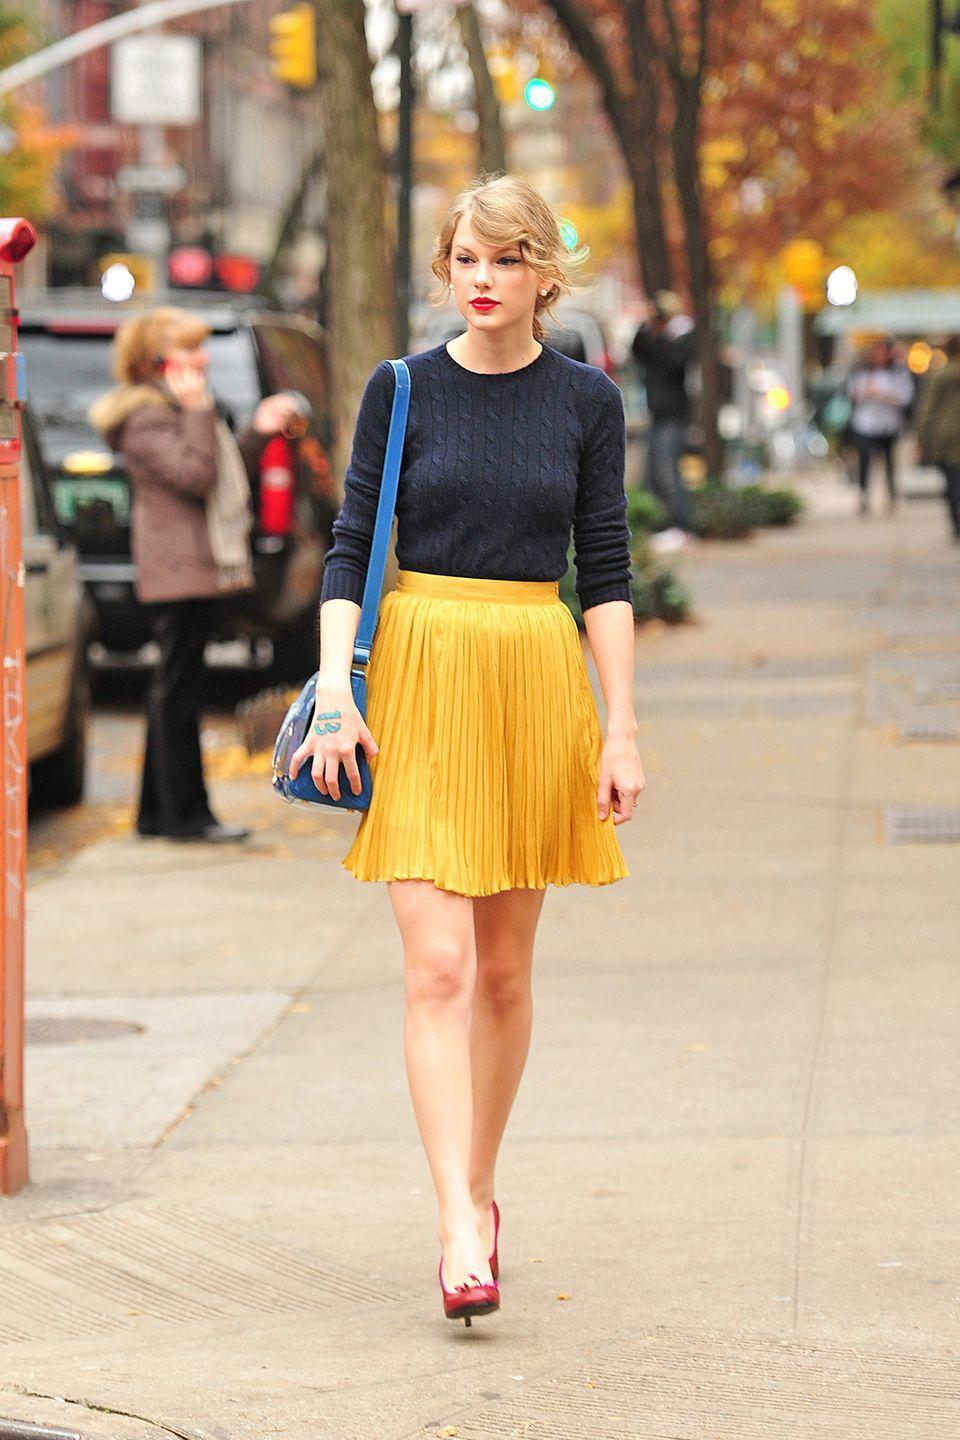 <p>In 2011, Taylor Swift was captured in New York City dressed like Snow White, wearing a bright-yellow skirt and a navy blue sweater.</p>